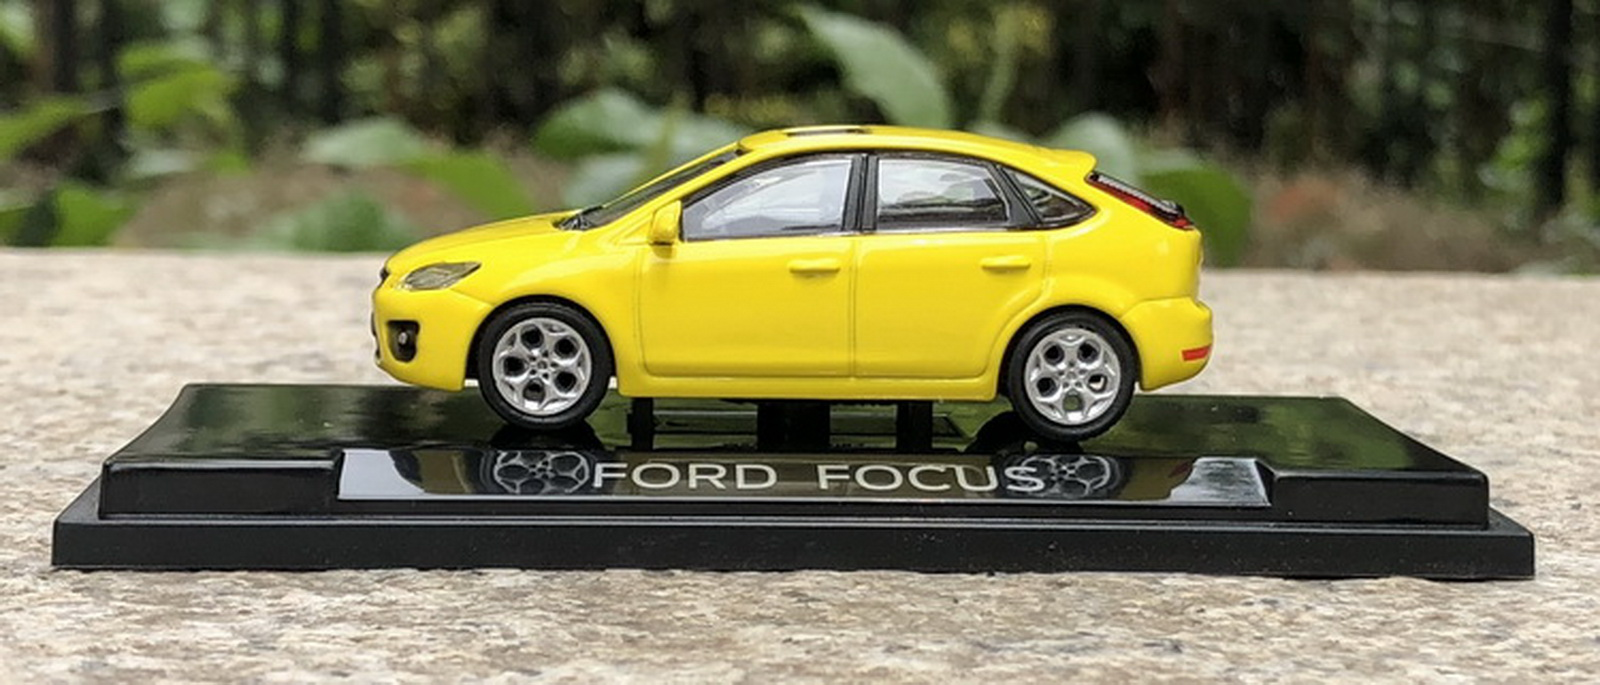 1//64 Scale Ford Focus 2007 Yellow Diecast Car model Collection Toy